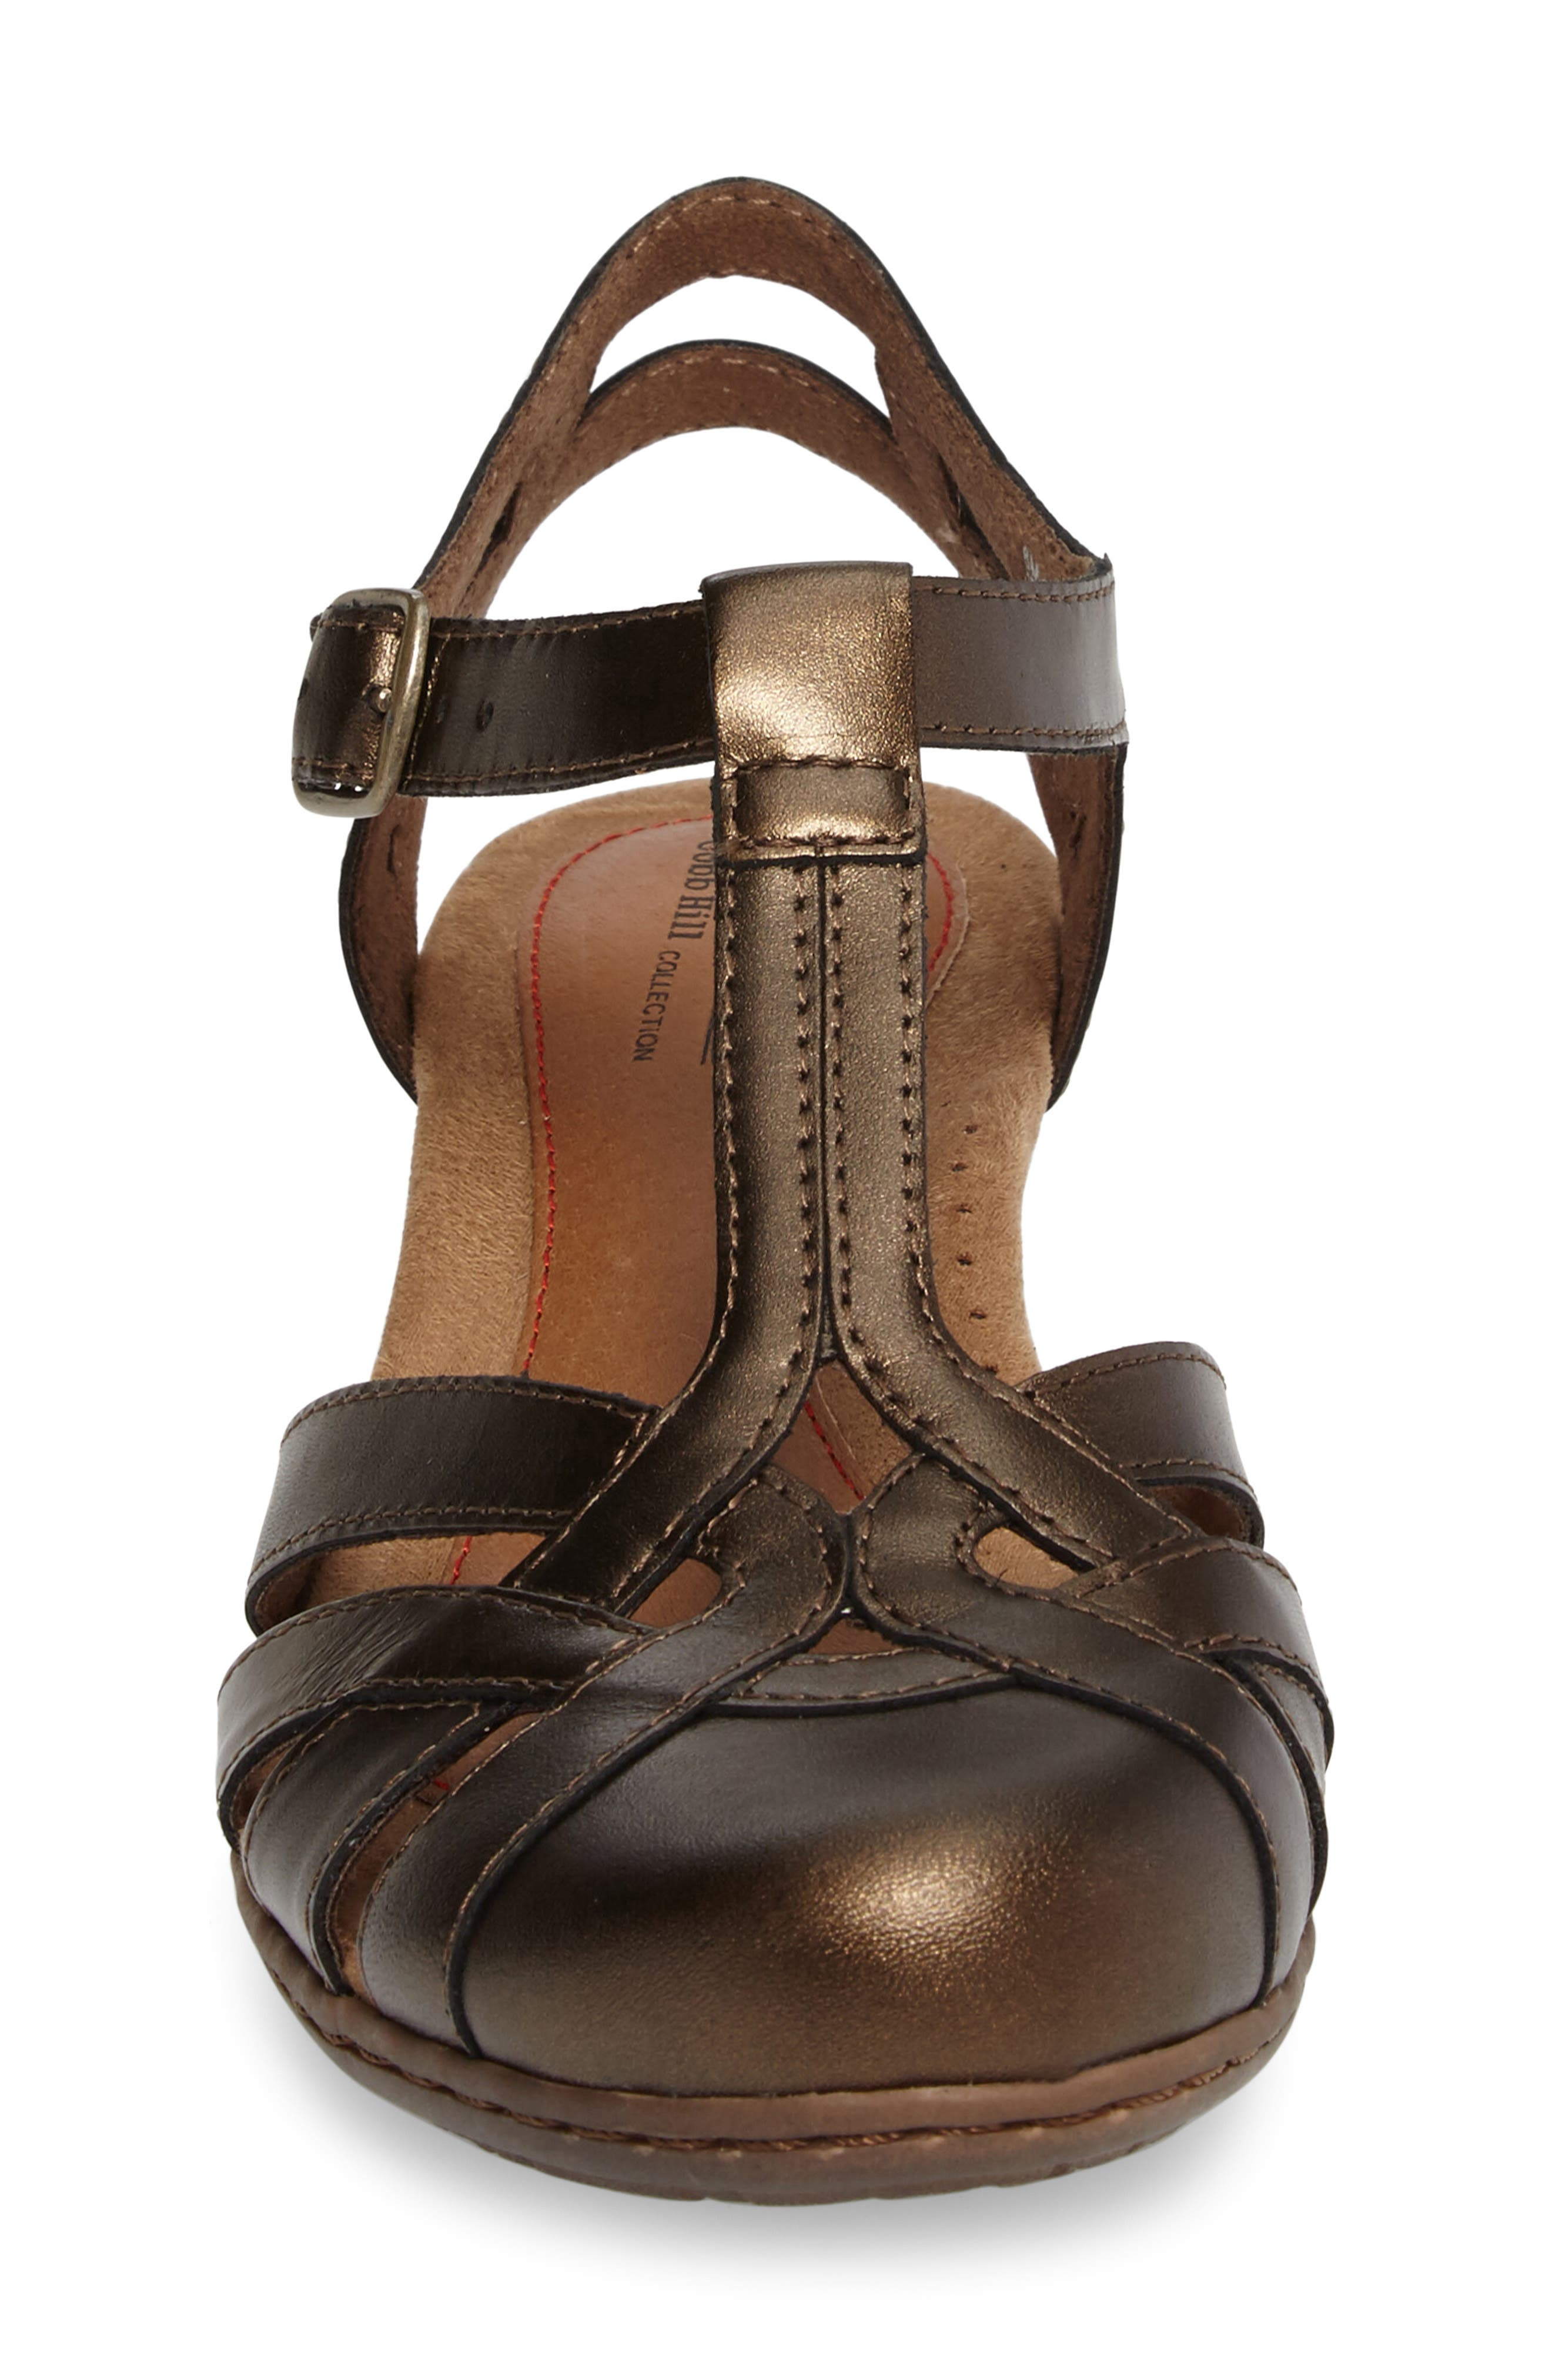 'Aubrey' Sandal,                             Alternate thumbnail 55, color,